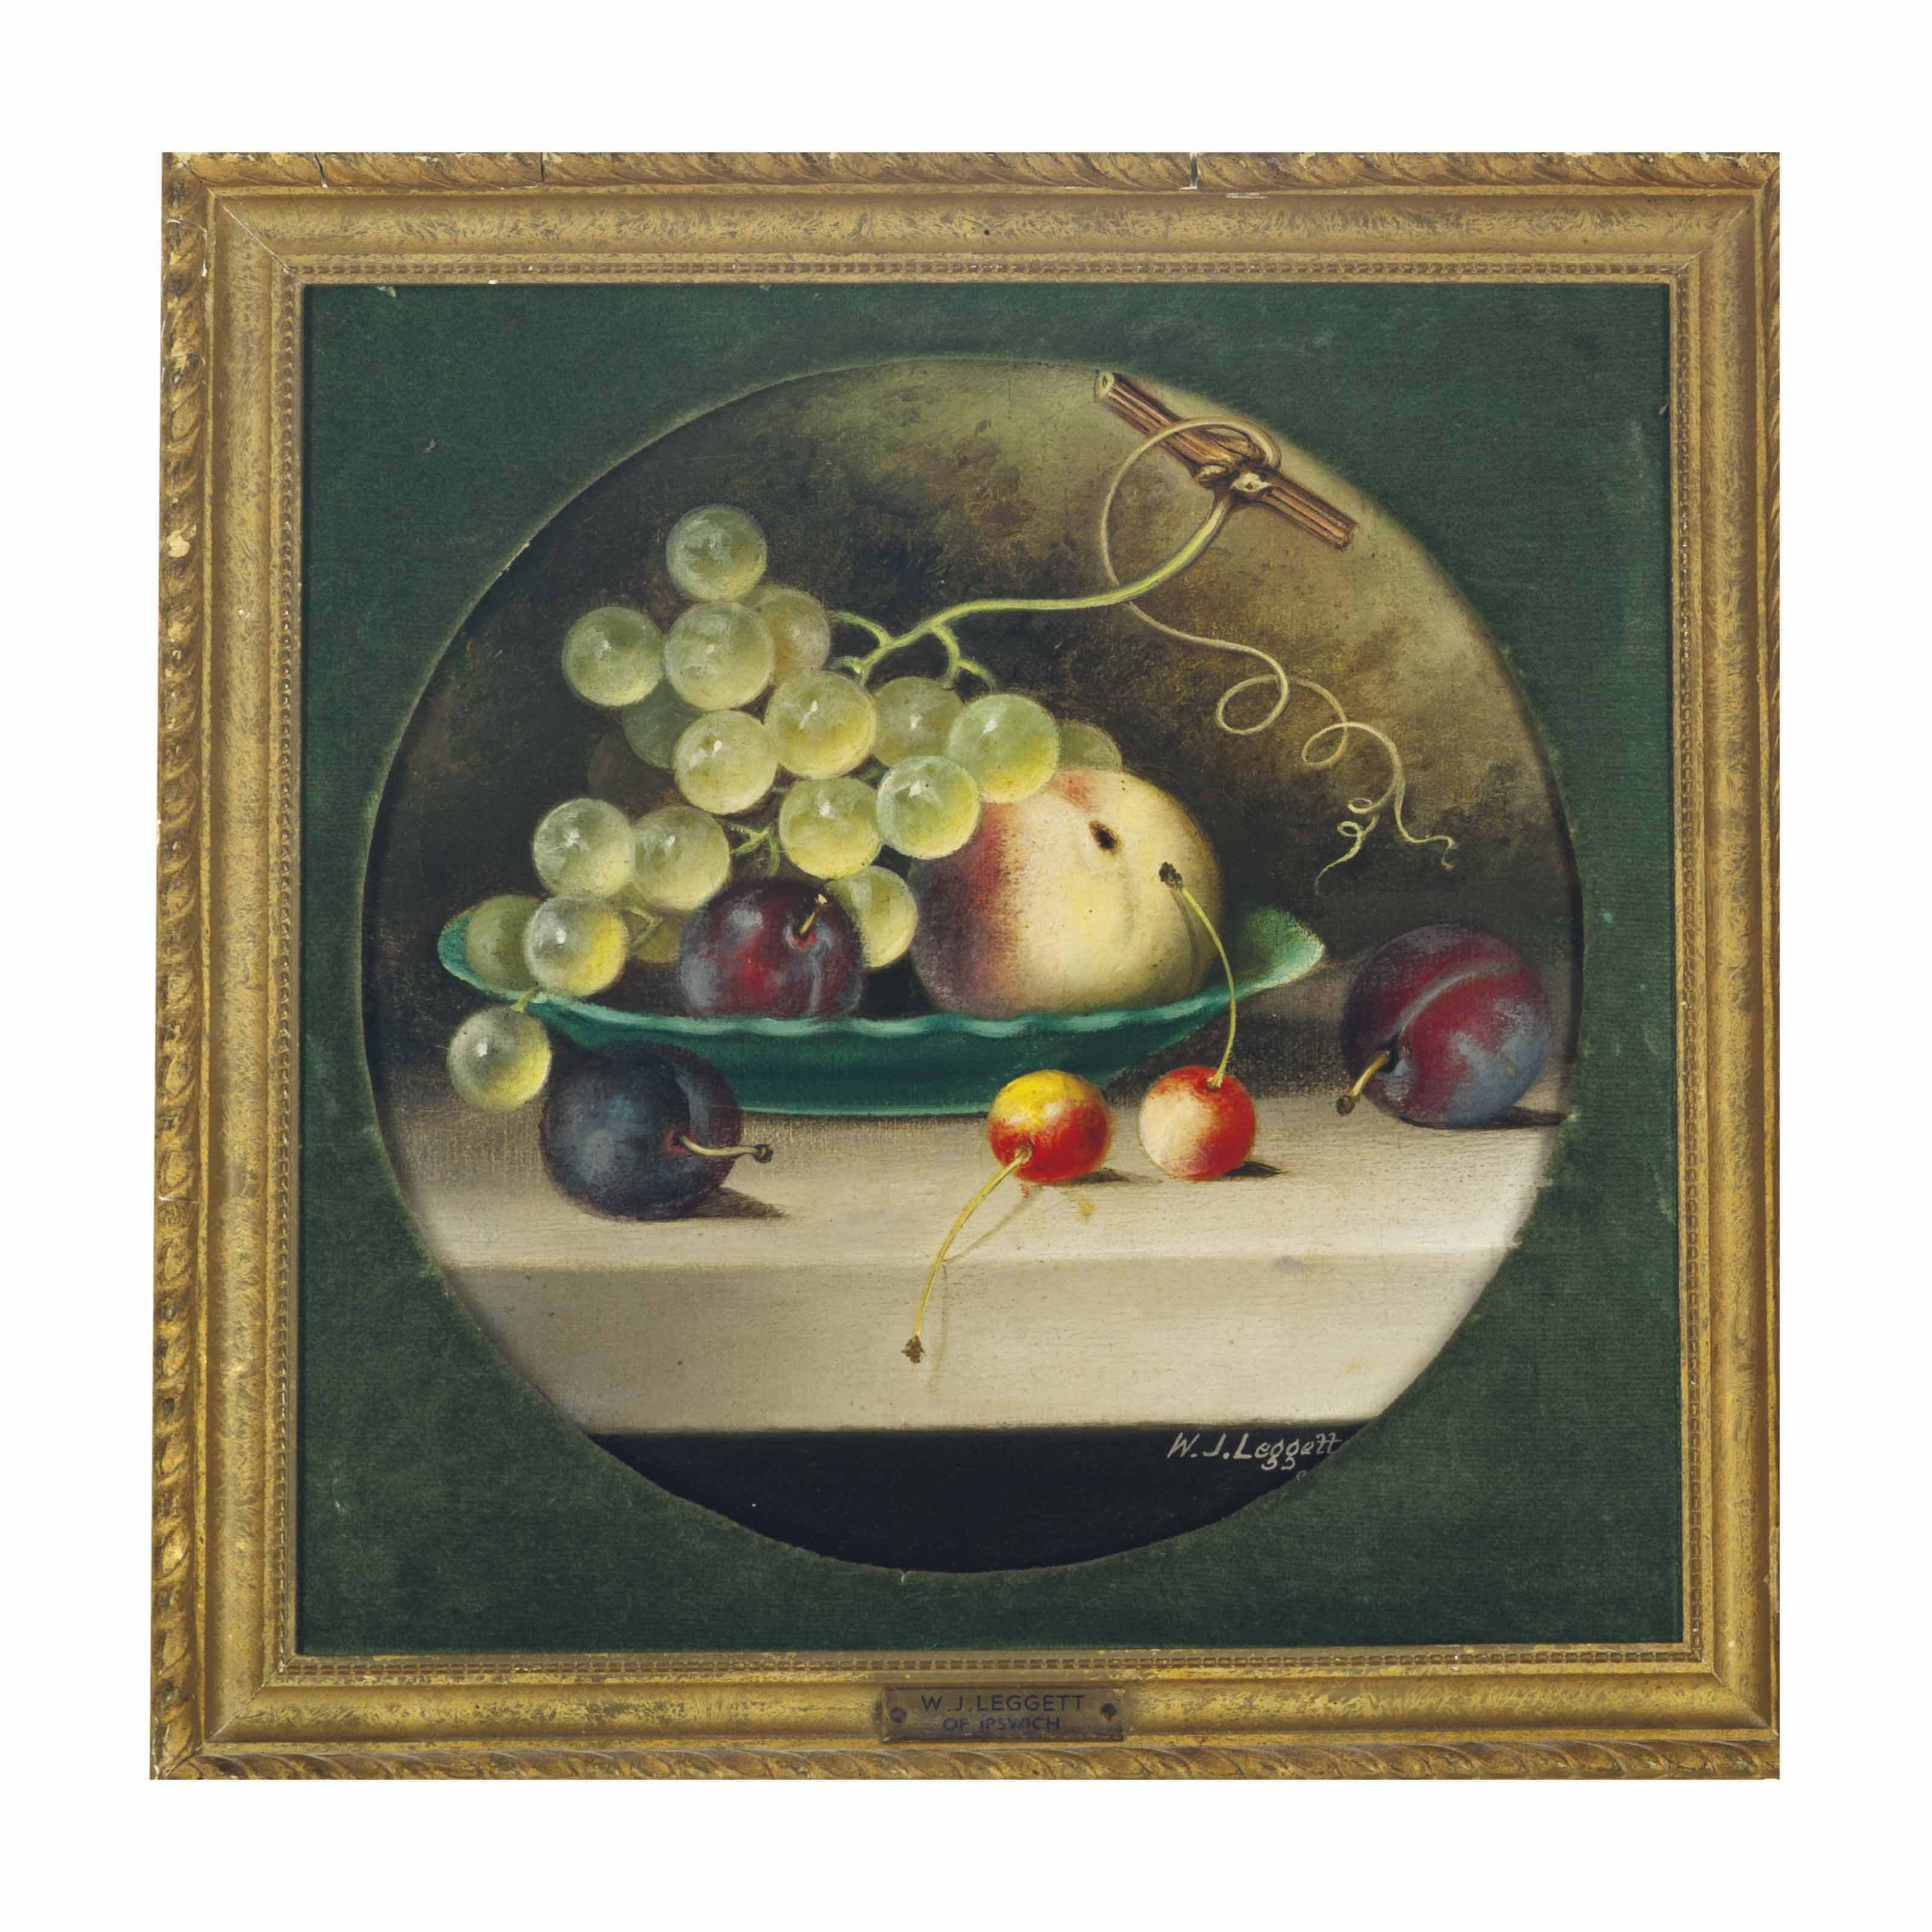 Green grapes, cherries, peaches and plums in a green bowl; and Black grapes, peaches and plums on a stone ledge